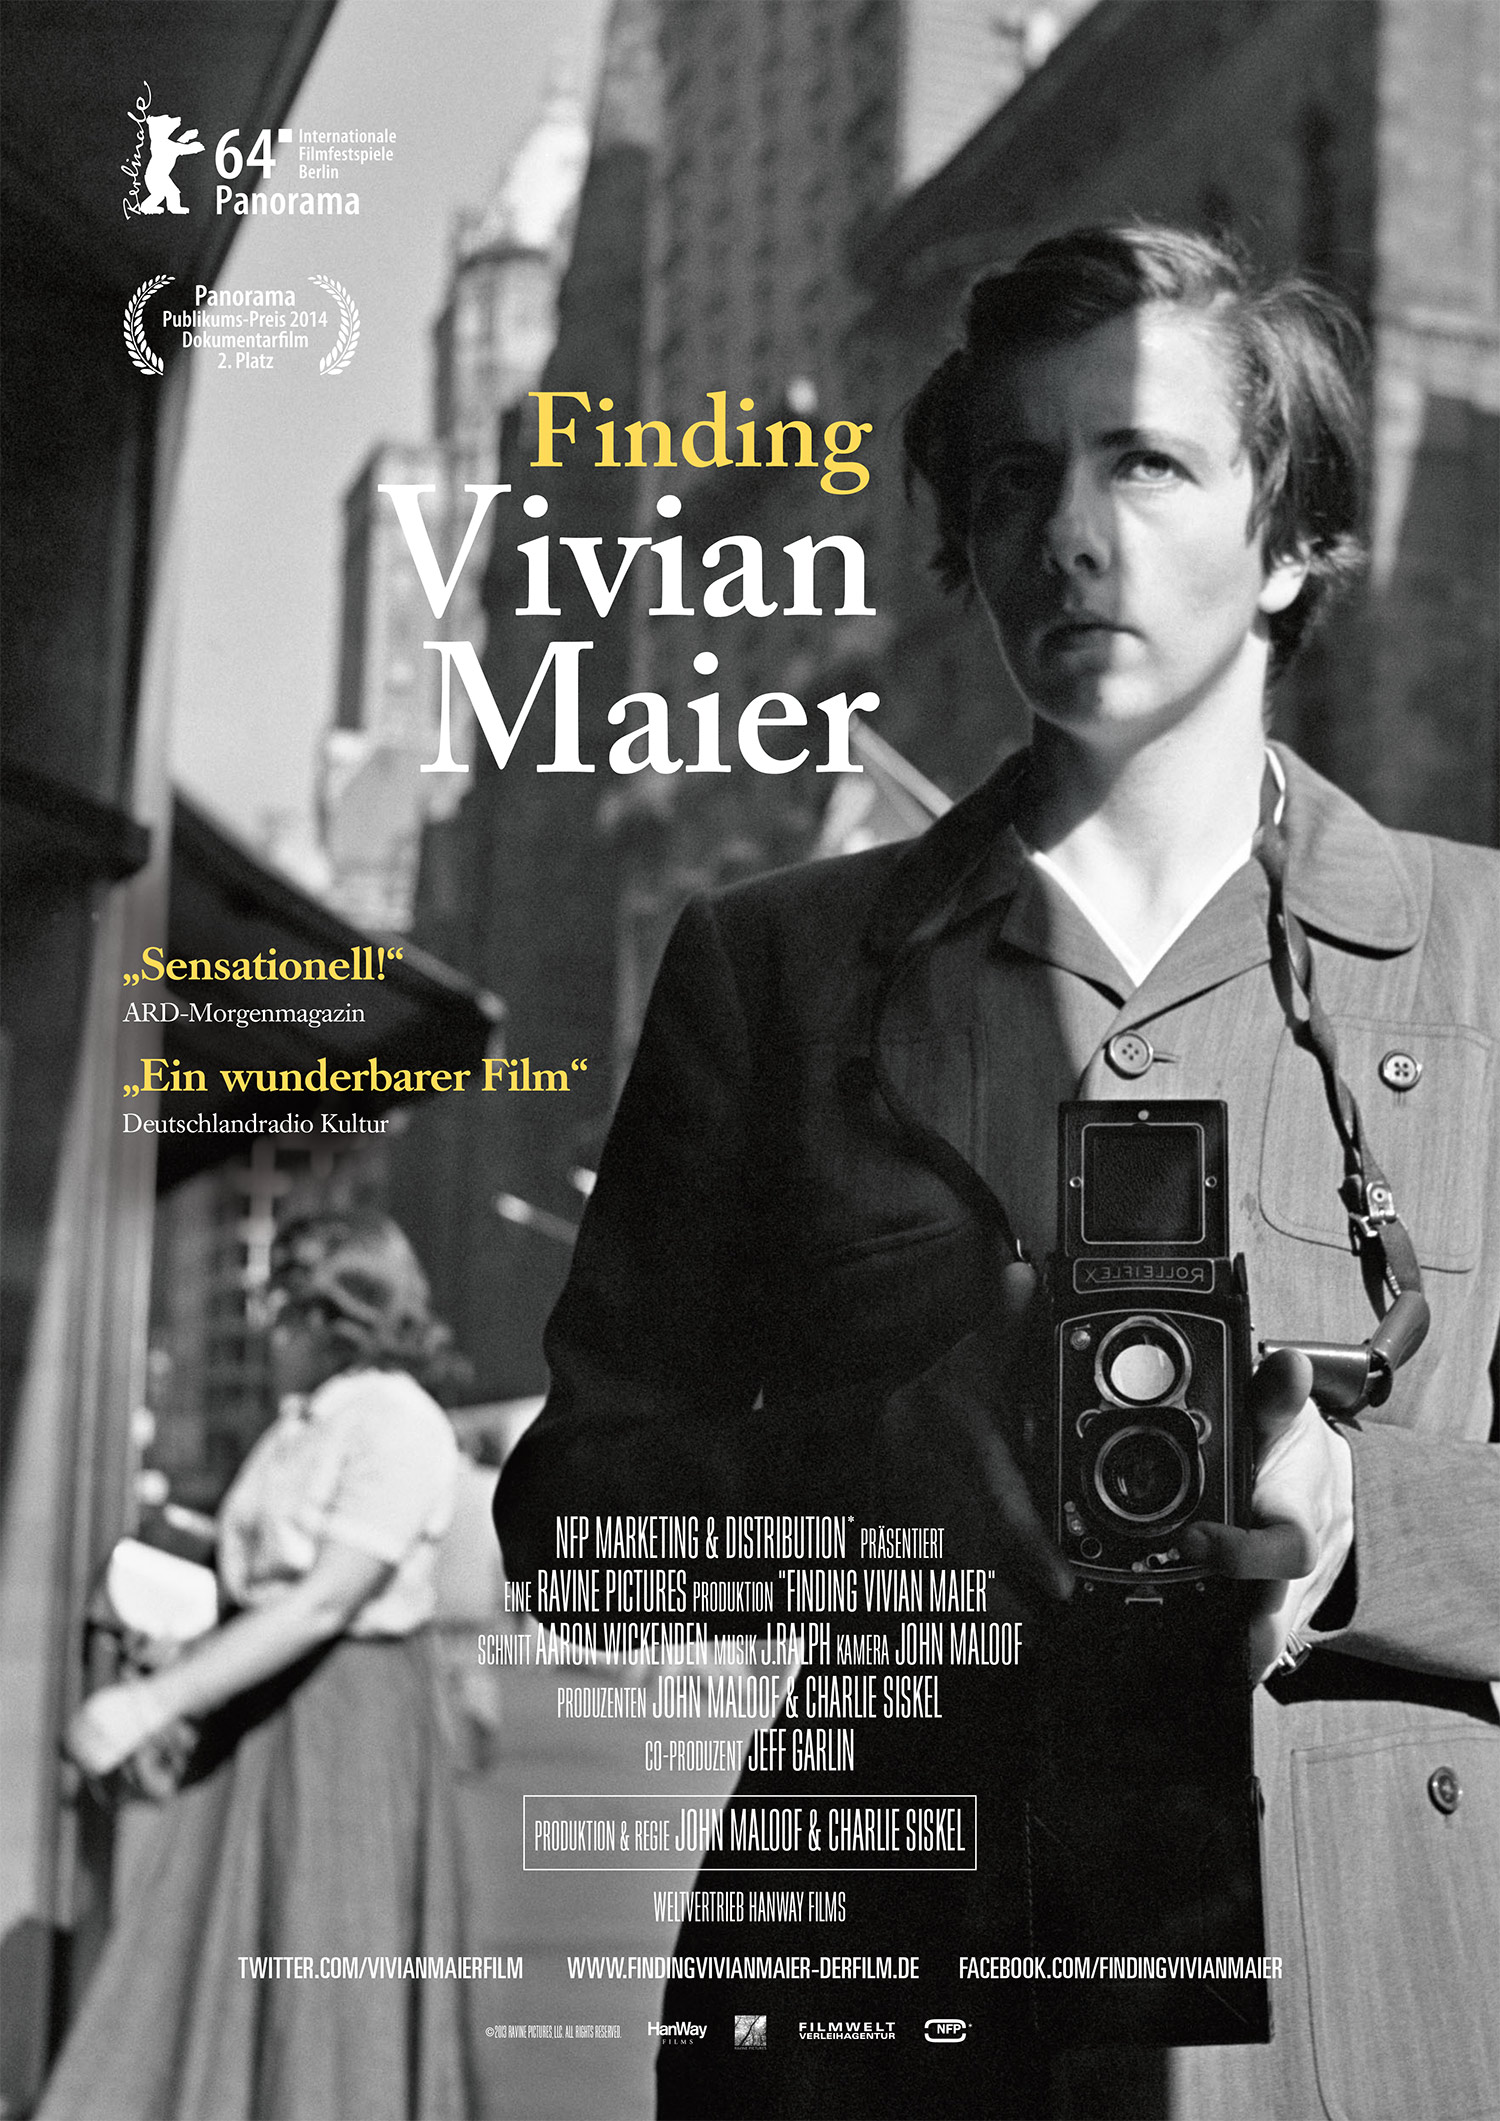 "NPP*<a href=""/finding-vivian-maier"">→</a><strong>Adaption</strong>"